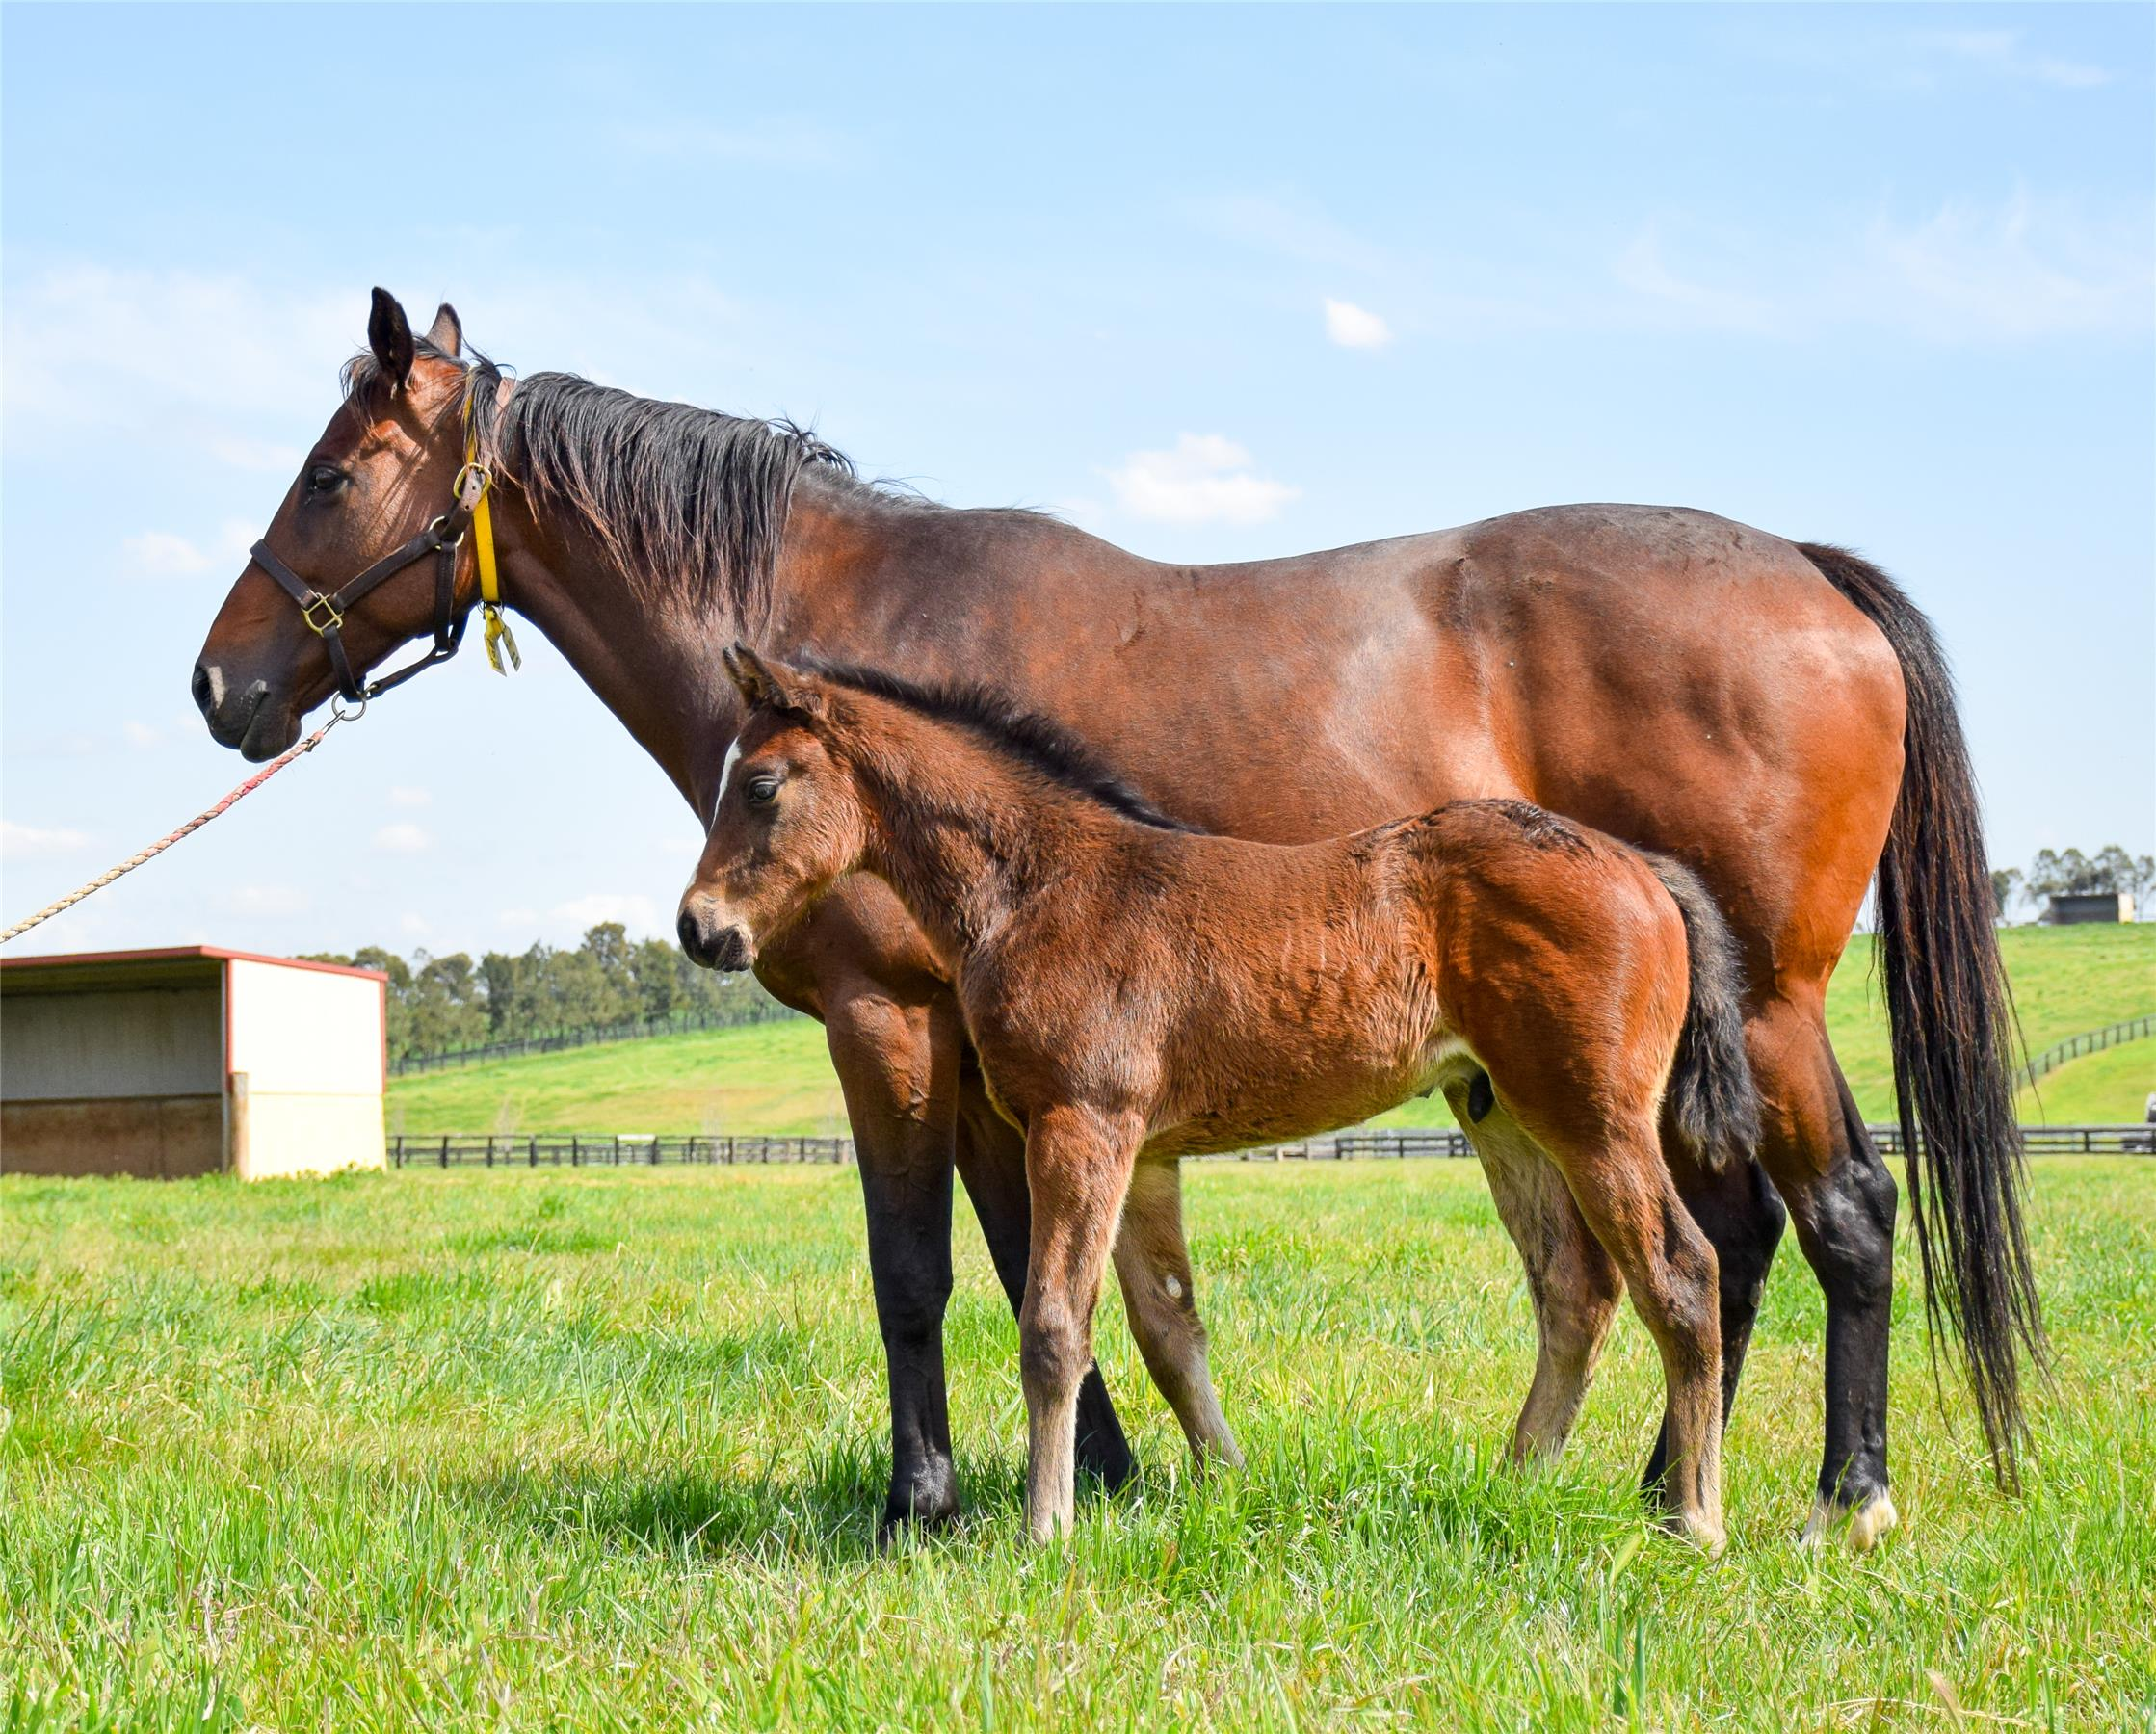 '19 colt out of Tree of Jesse